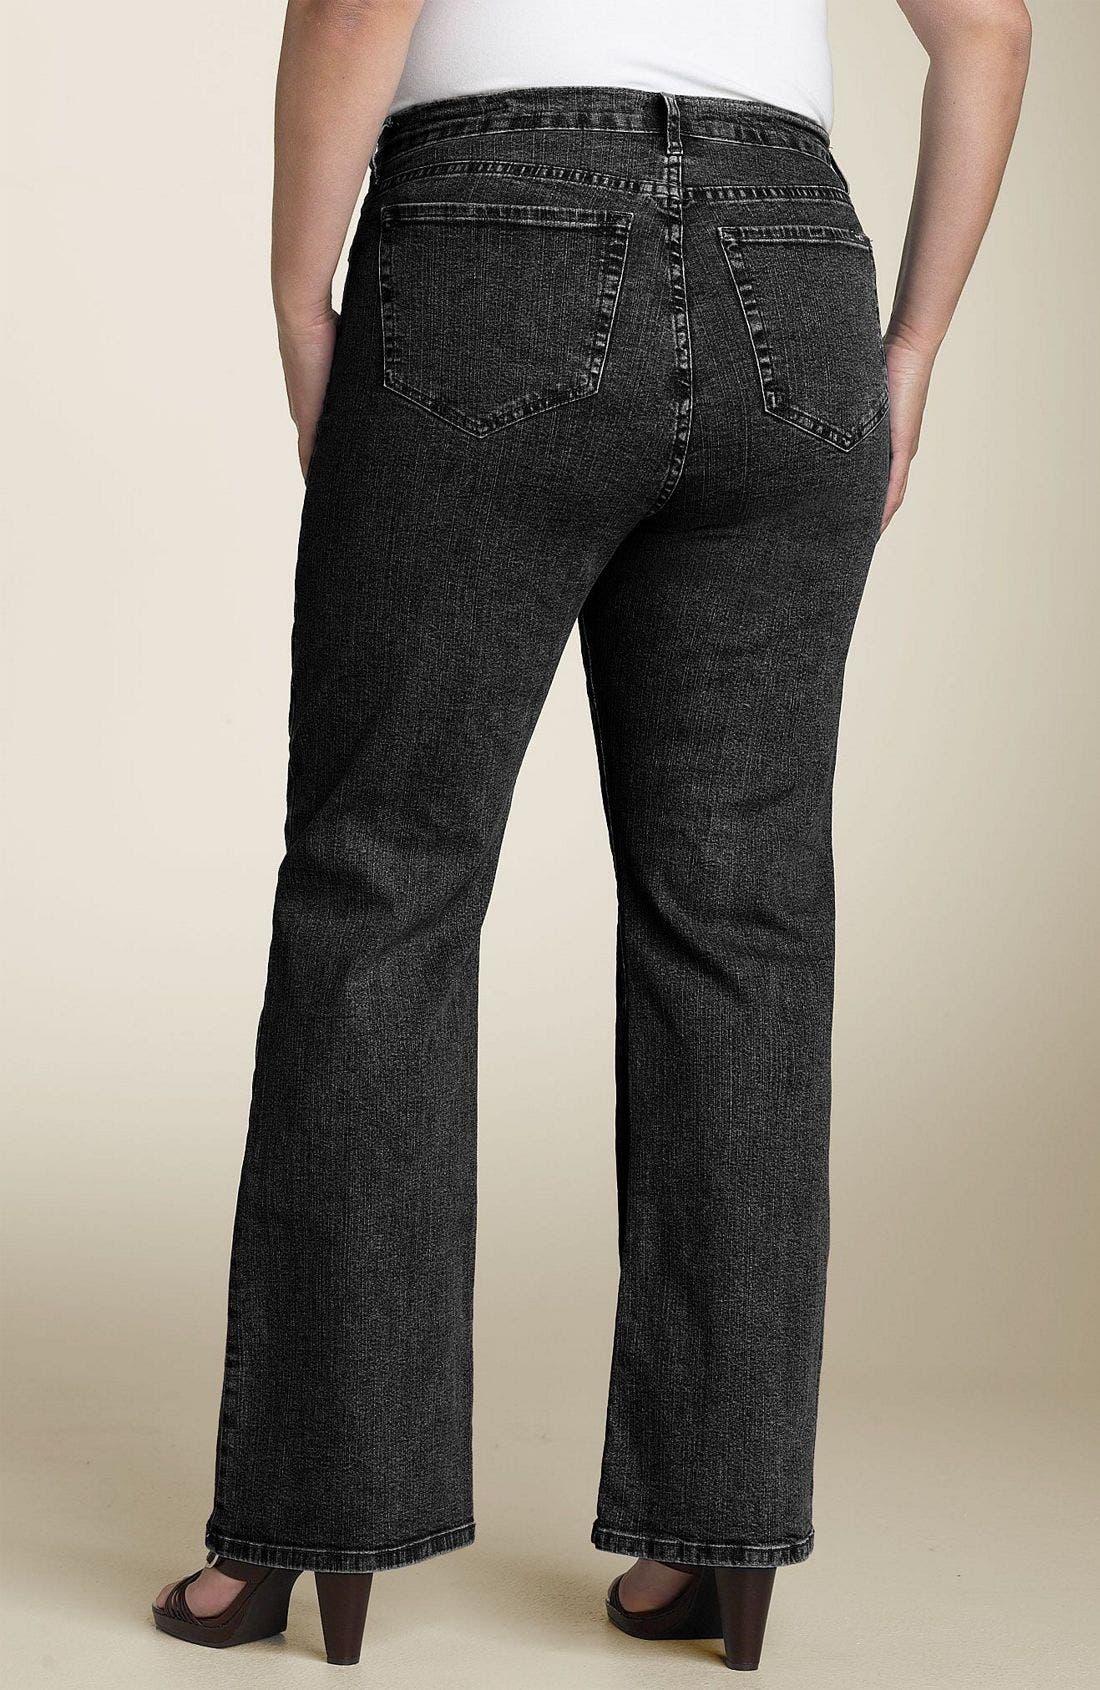 Main Image - NYDJ Stretch Jeans (Plus)